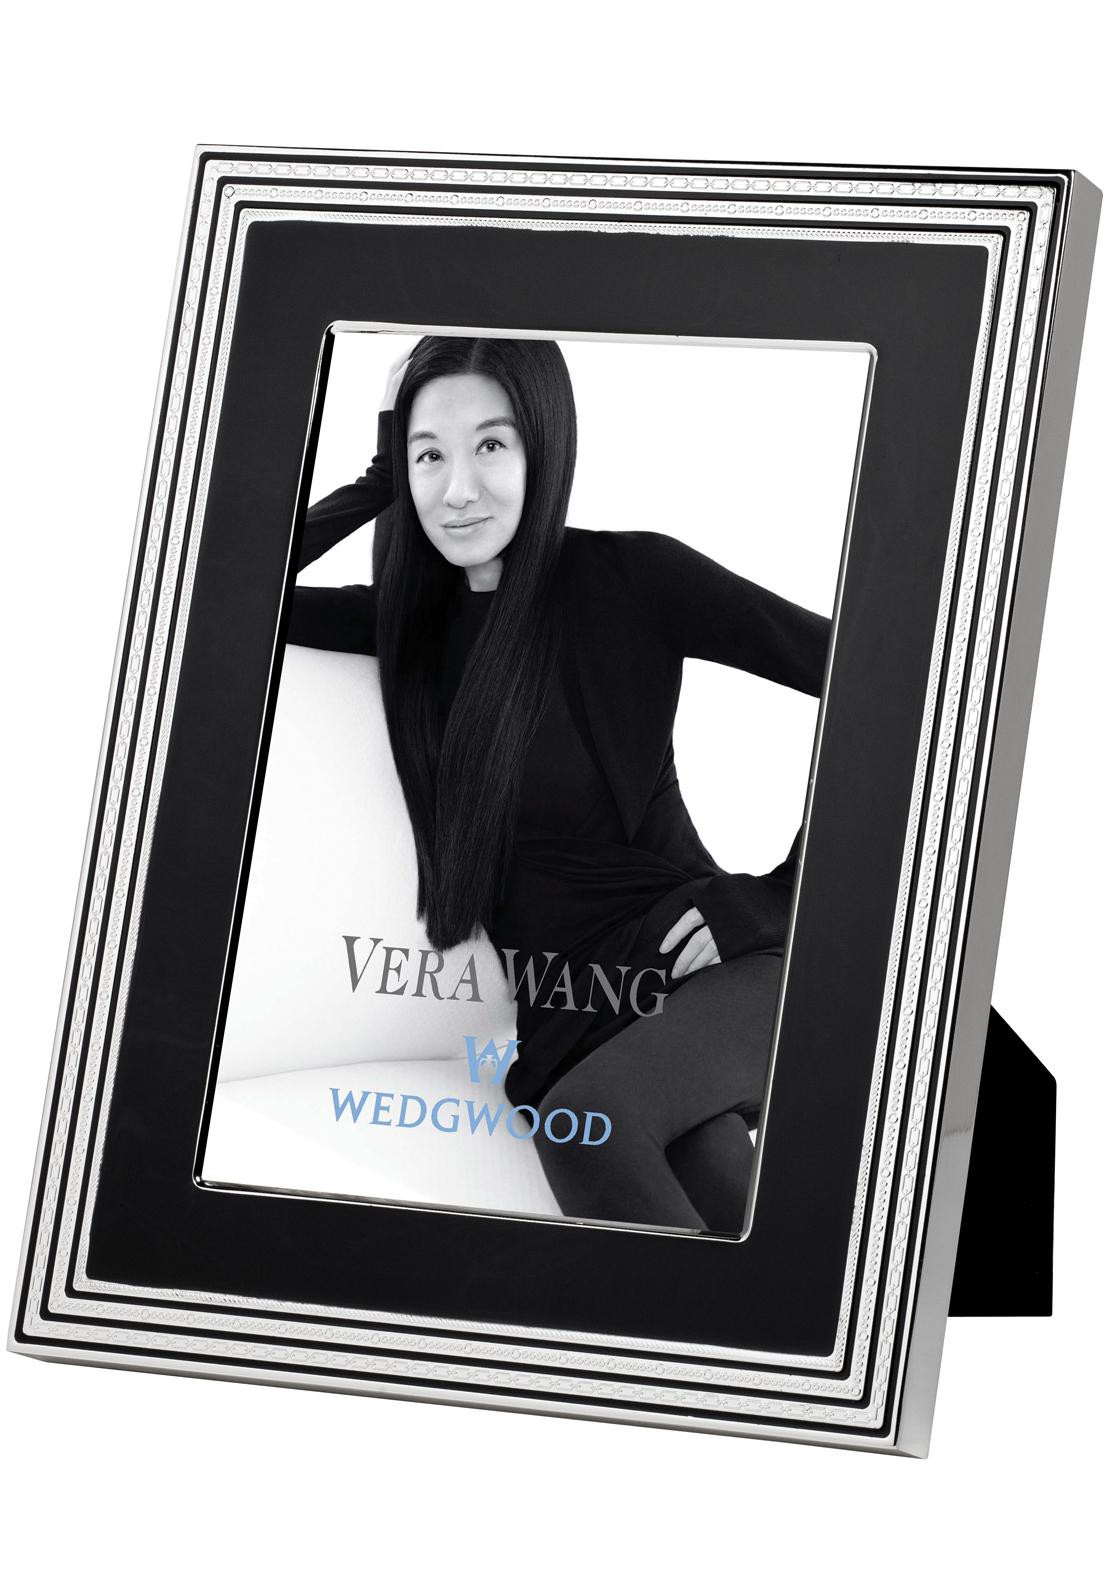 Vera Wang Wedgwood With Love Noir Photo Frame, 5 x 7 inches